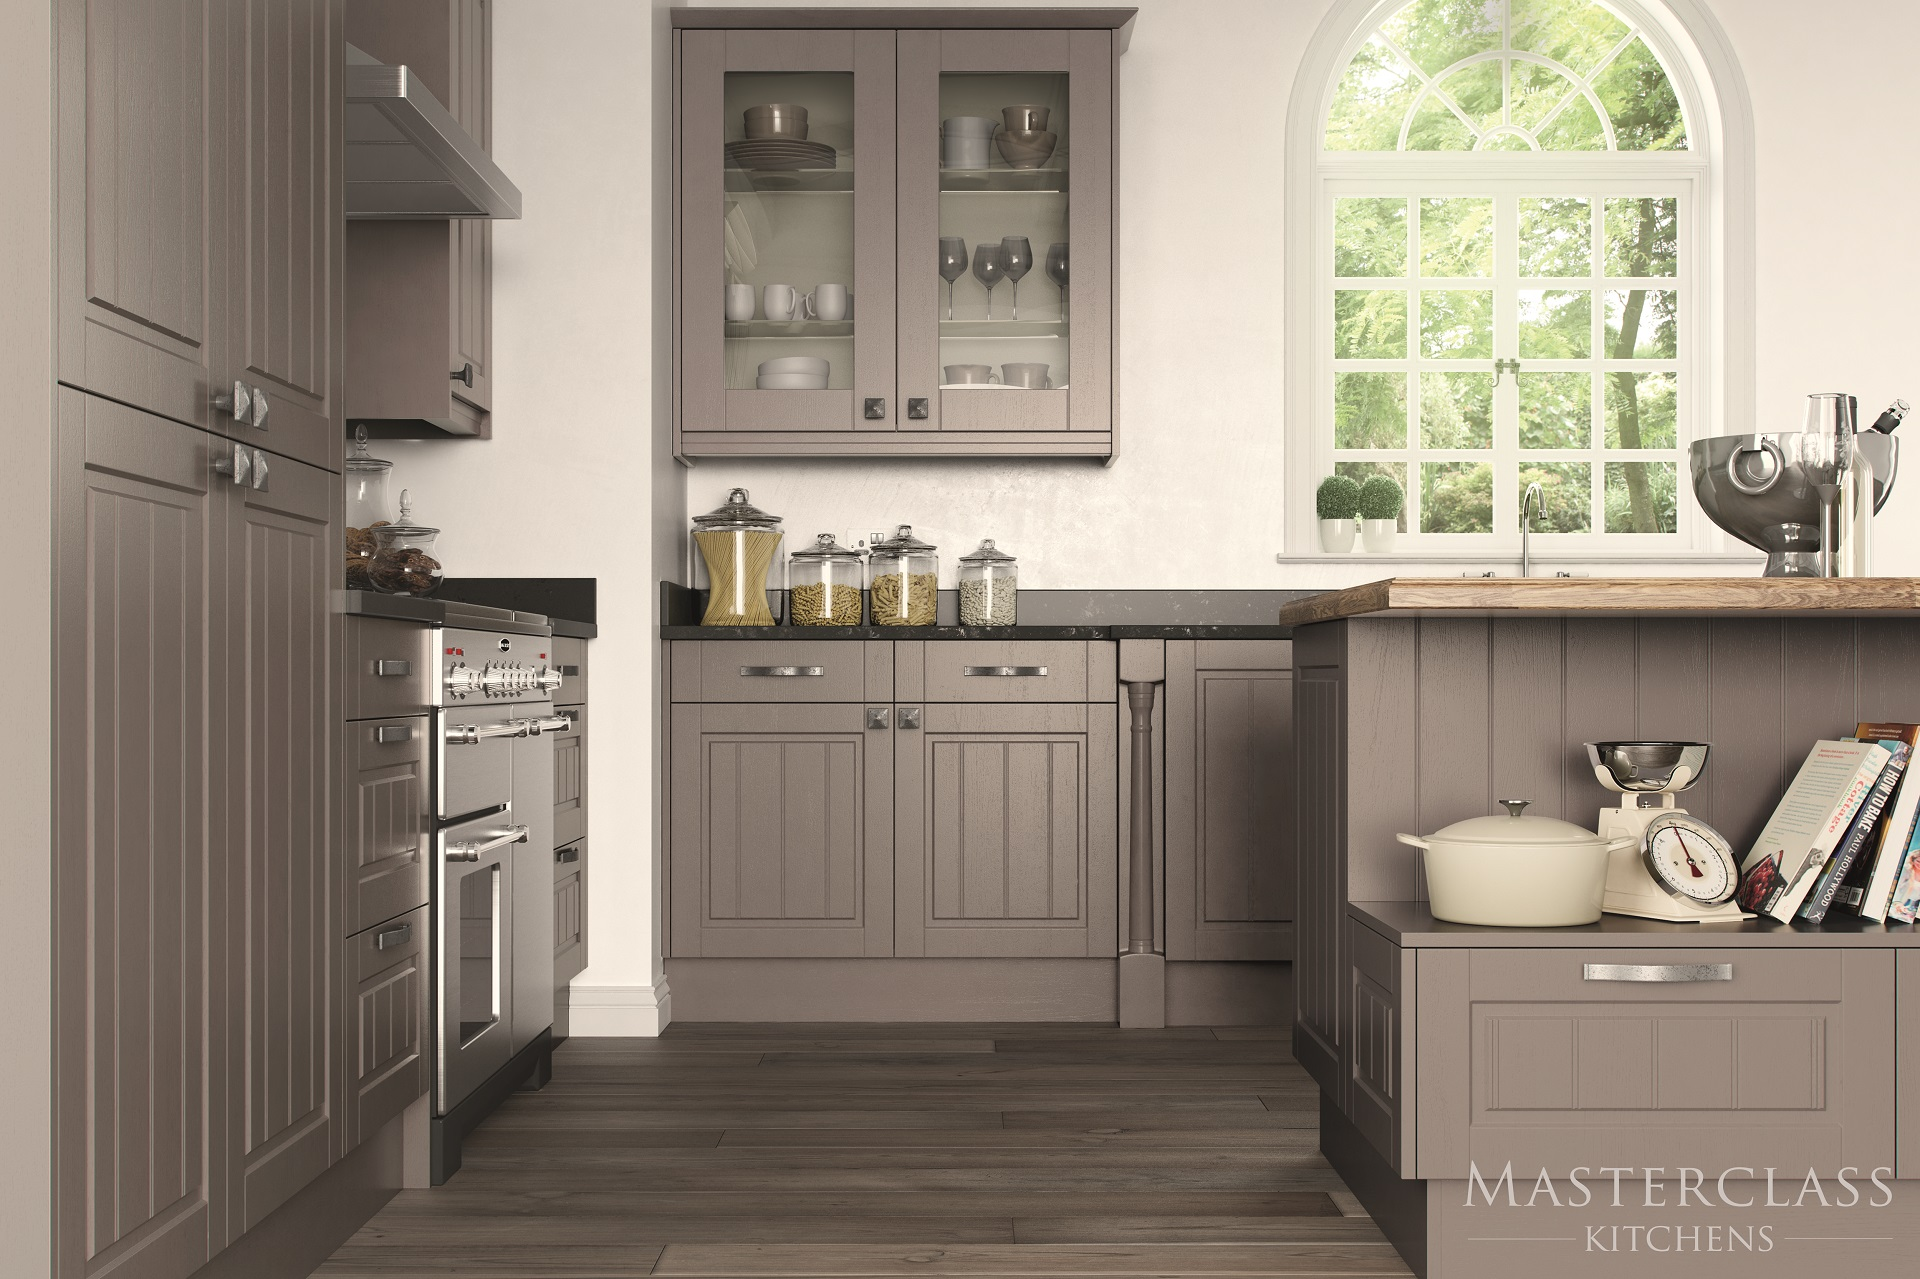 New Forest Designs Luxury Fitted Classic Kitchens